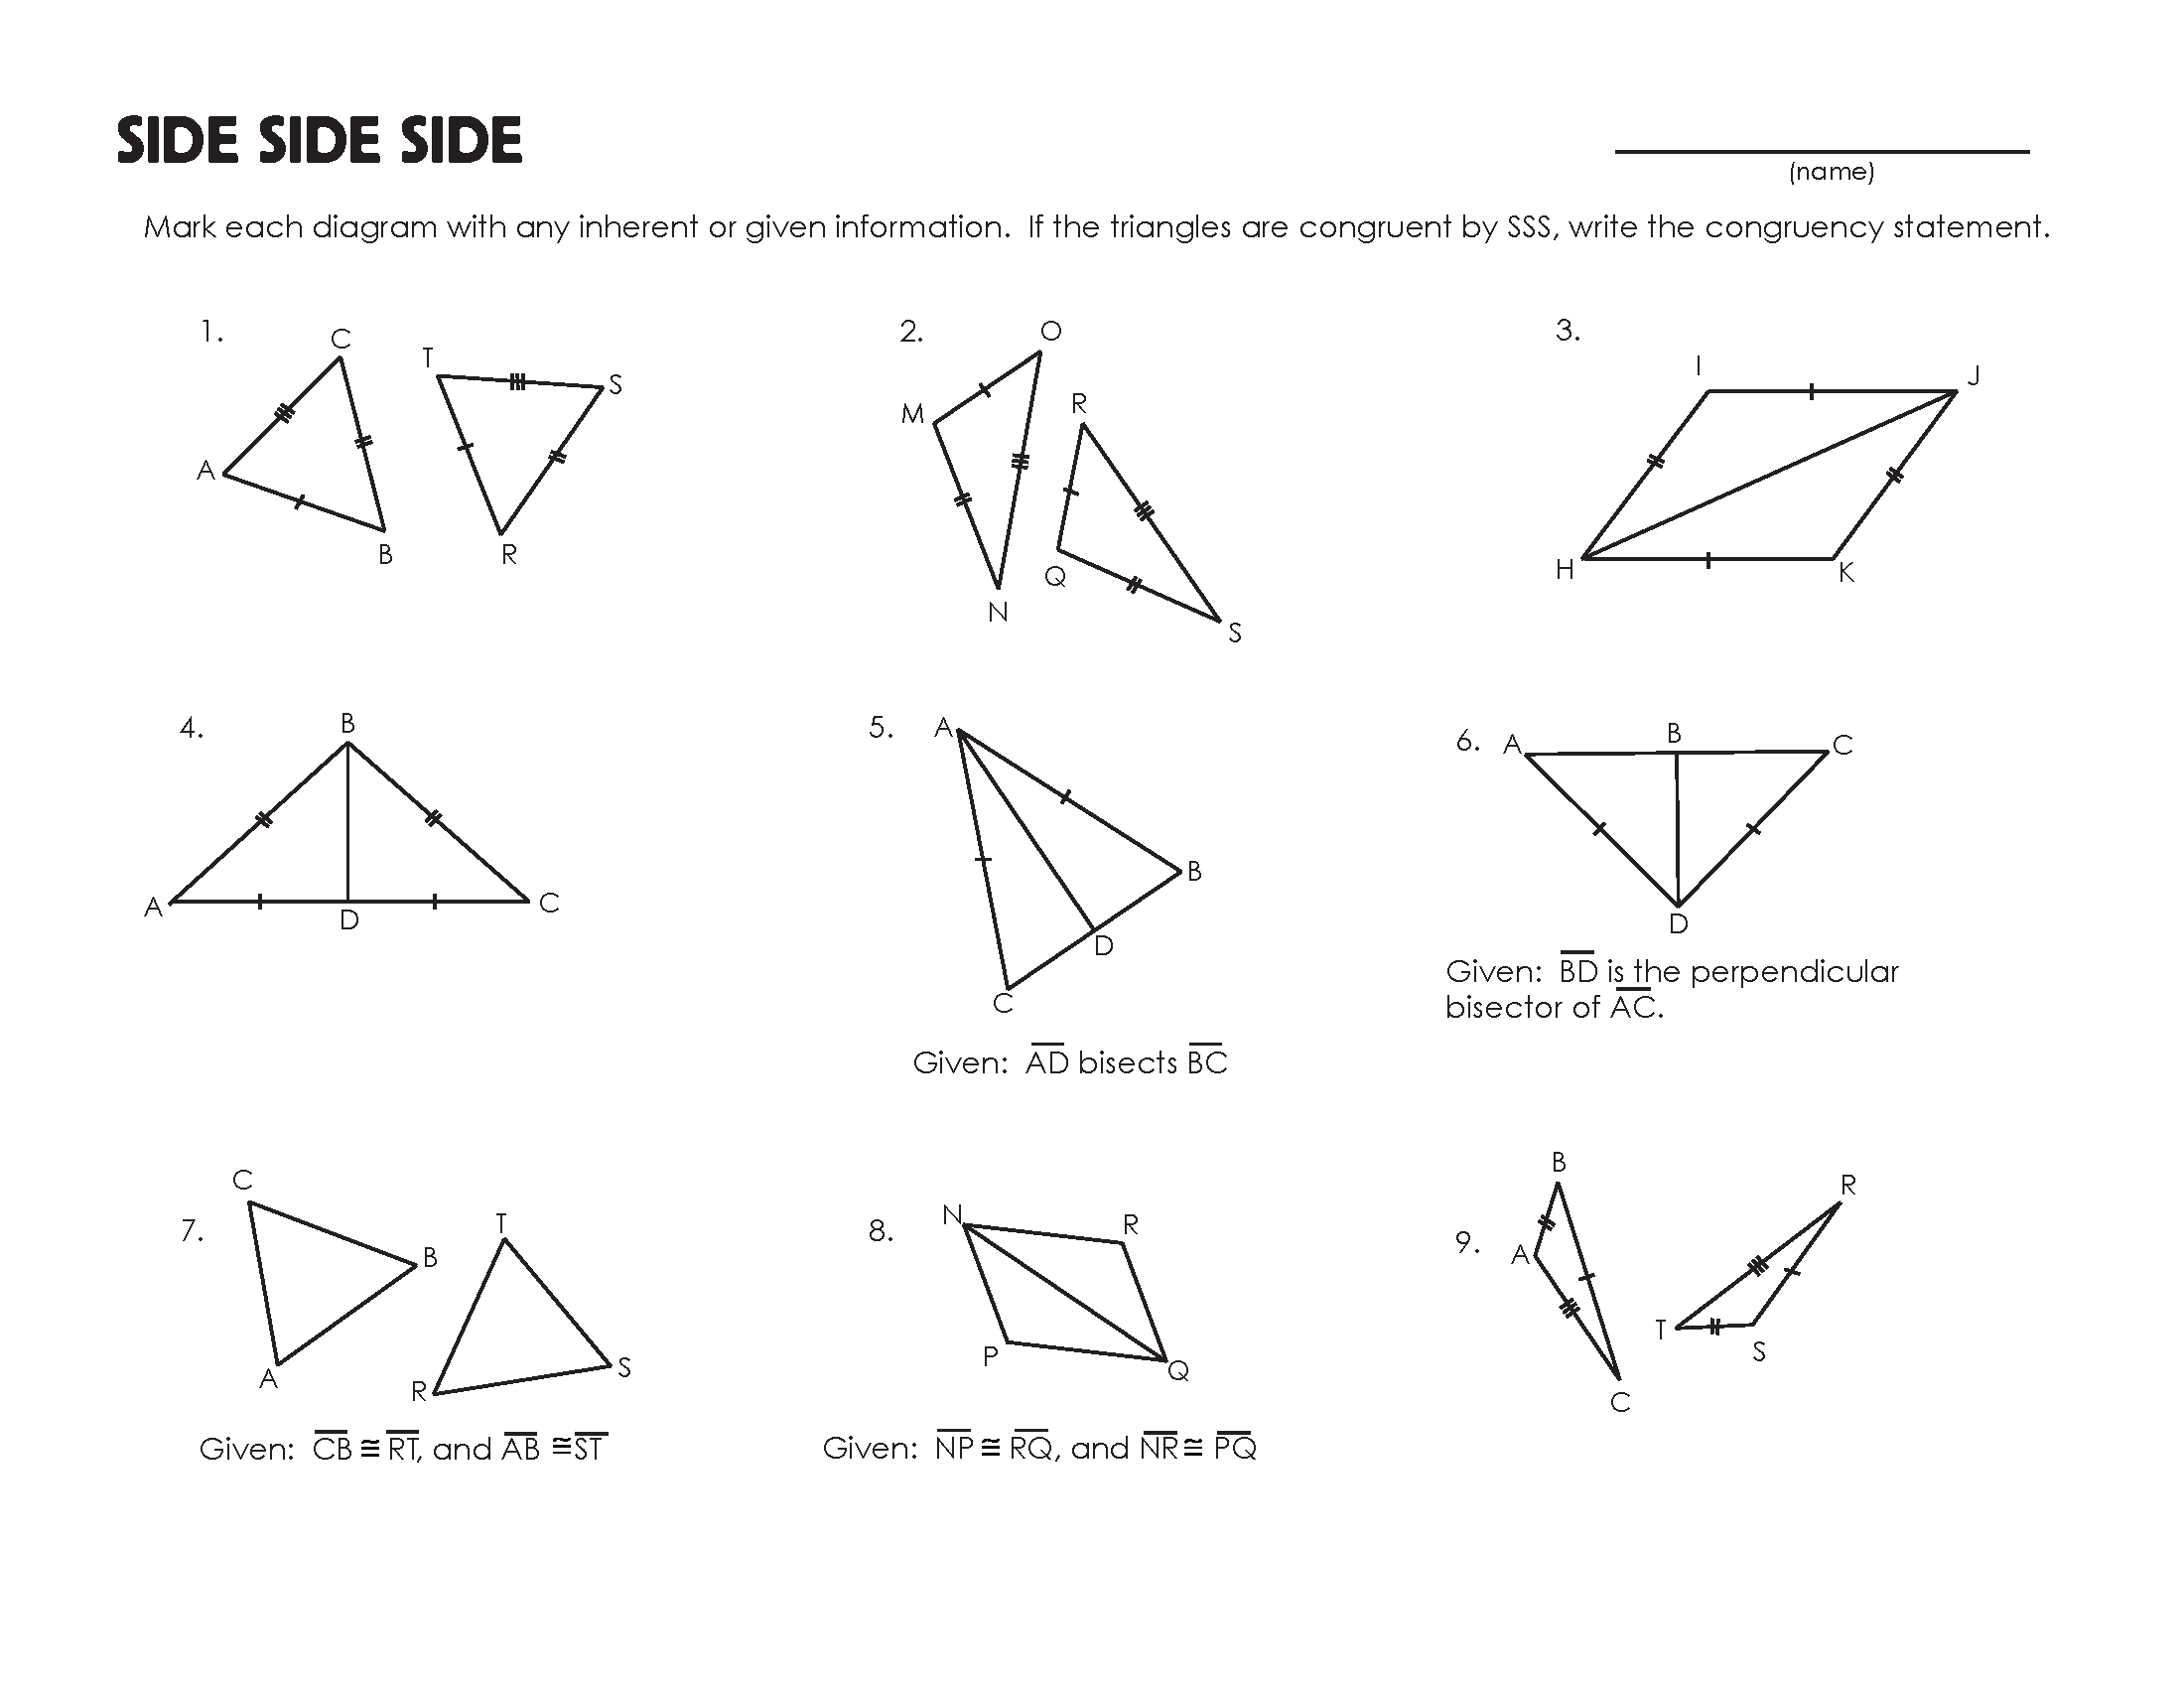 worksheet Congruent Triangle Proofs Worksheet 23 best congruent triangles images on pinterest geometry activity worksheet mrmillermath